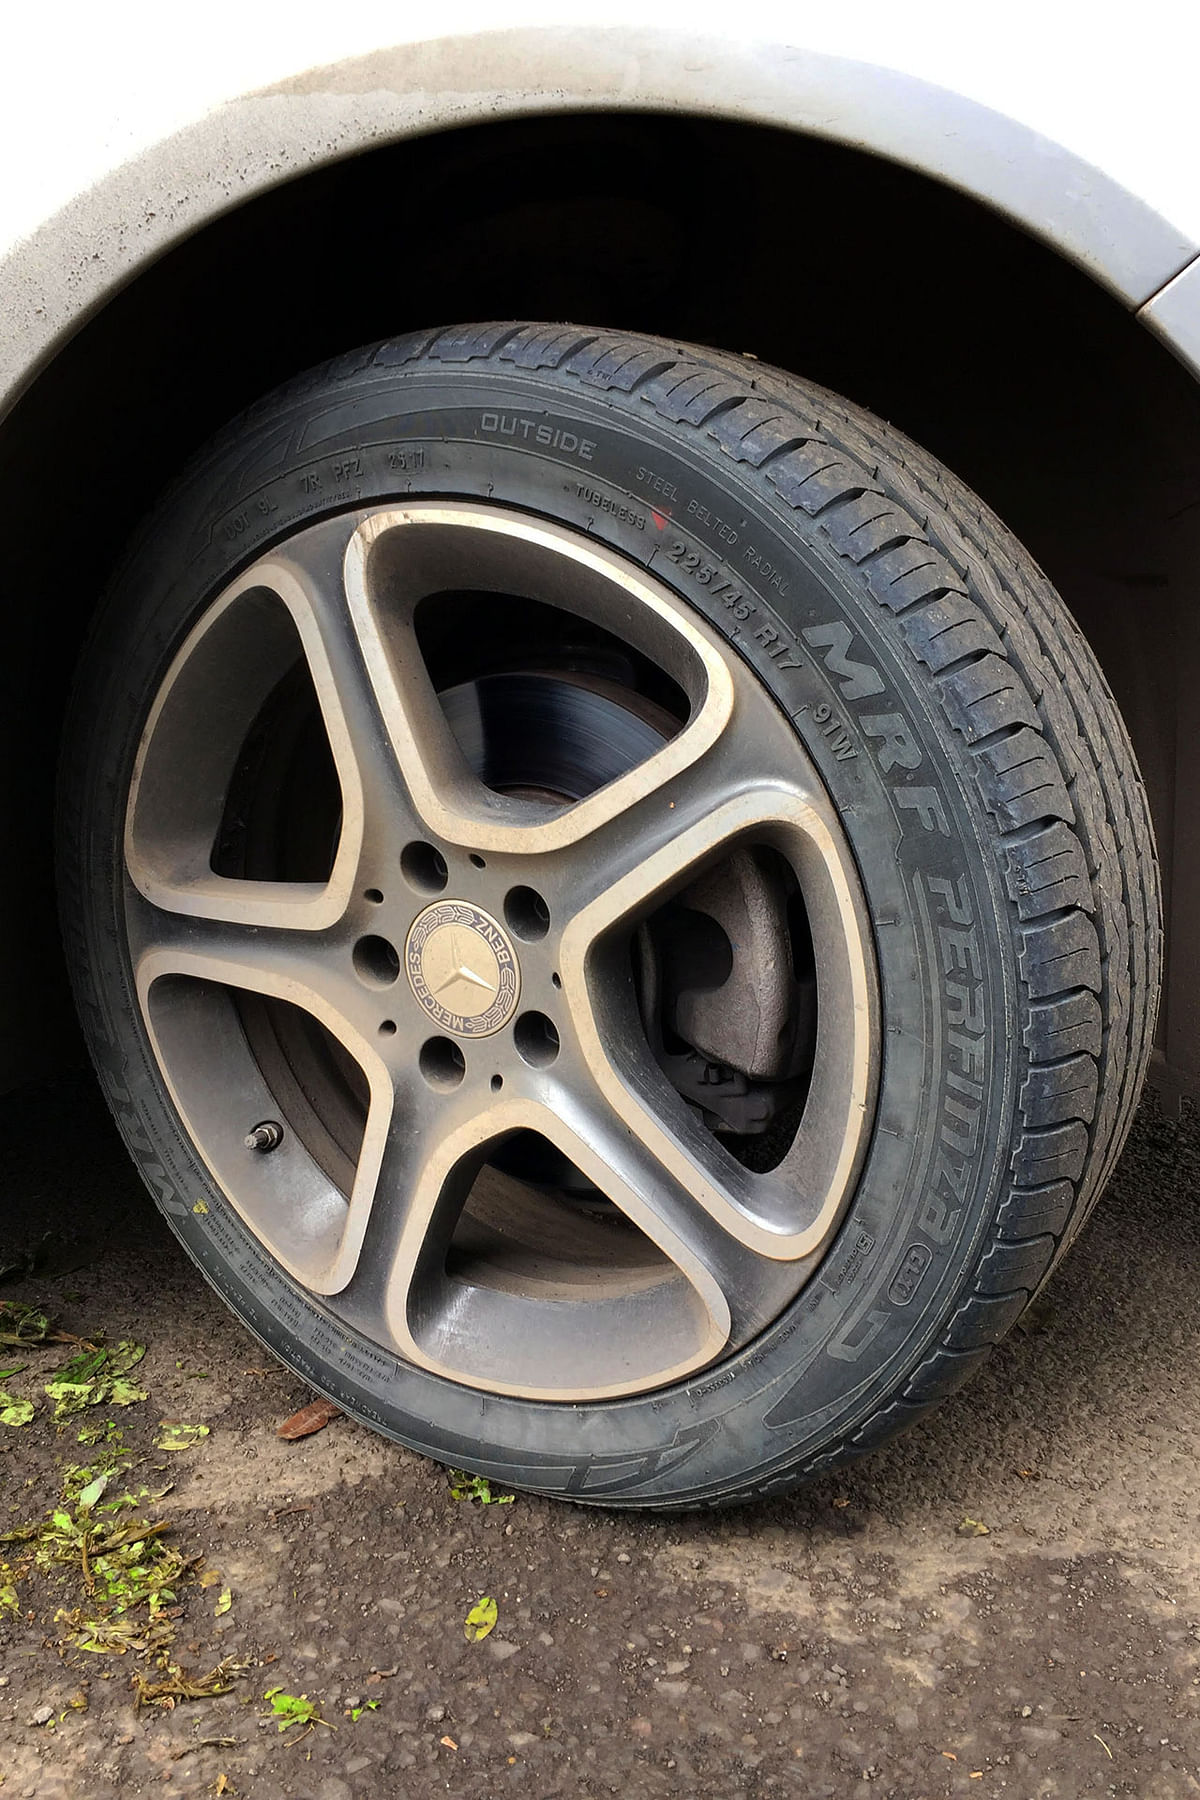 We tested the Perfinza rubber on the highways in heavy monsoon conditions